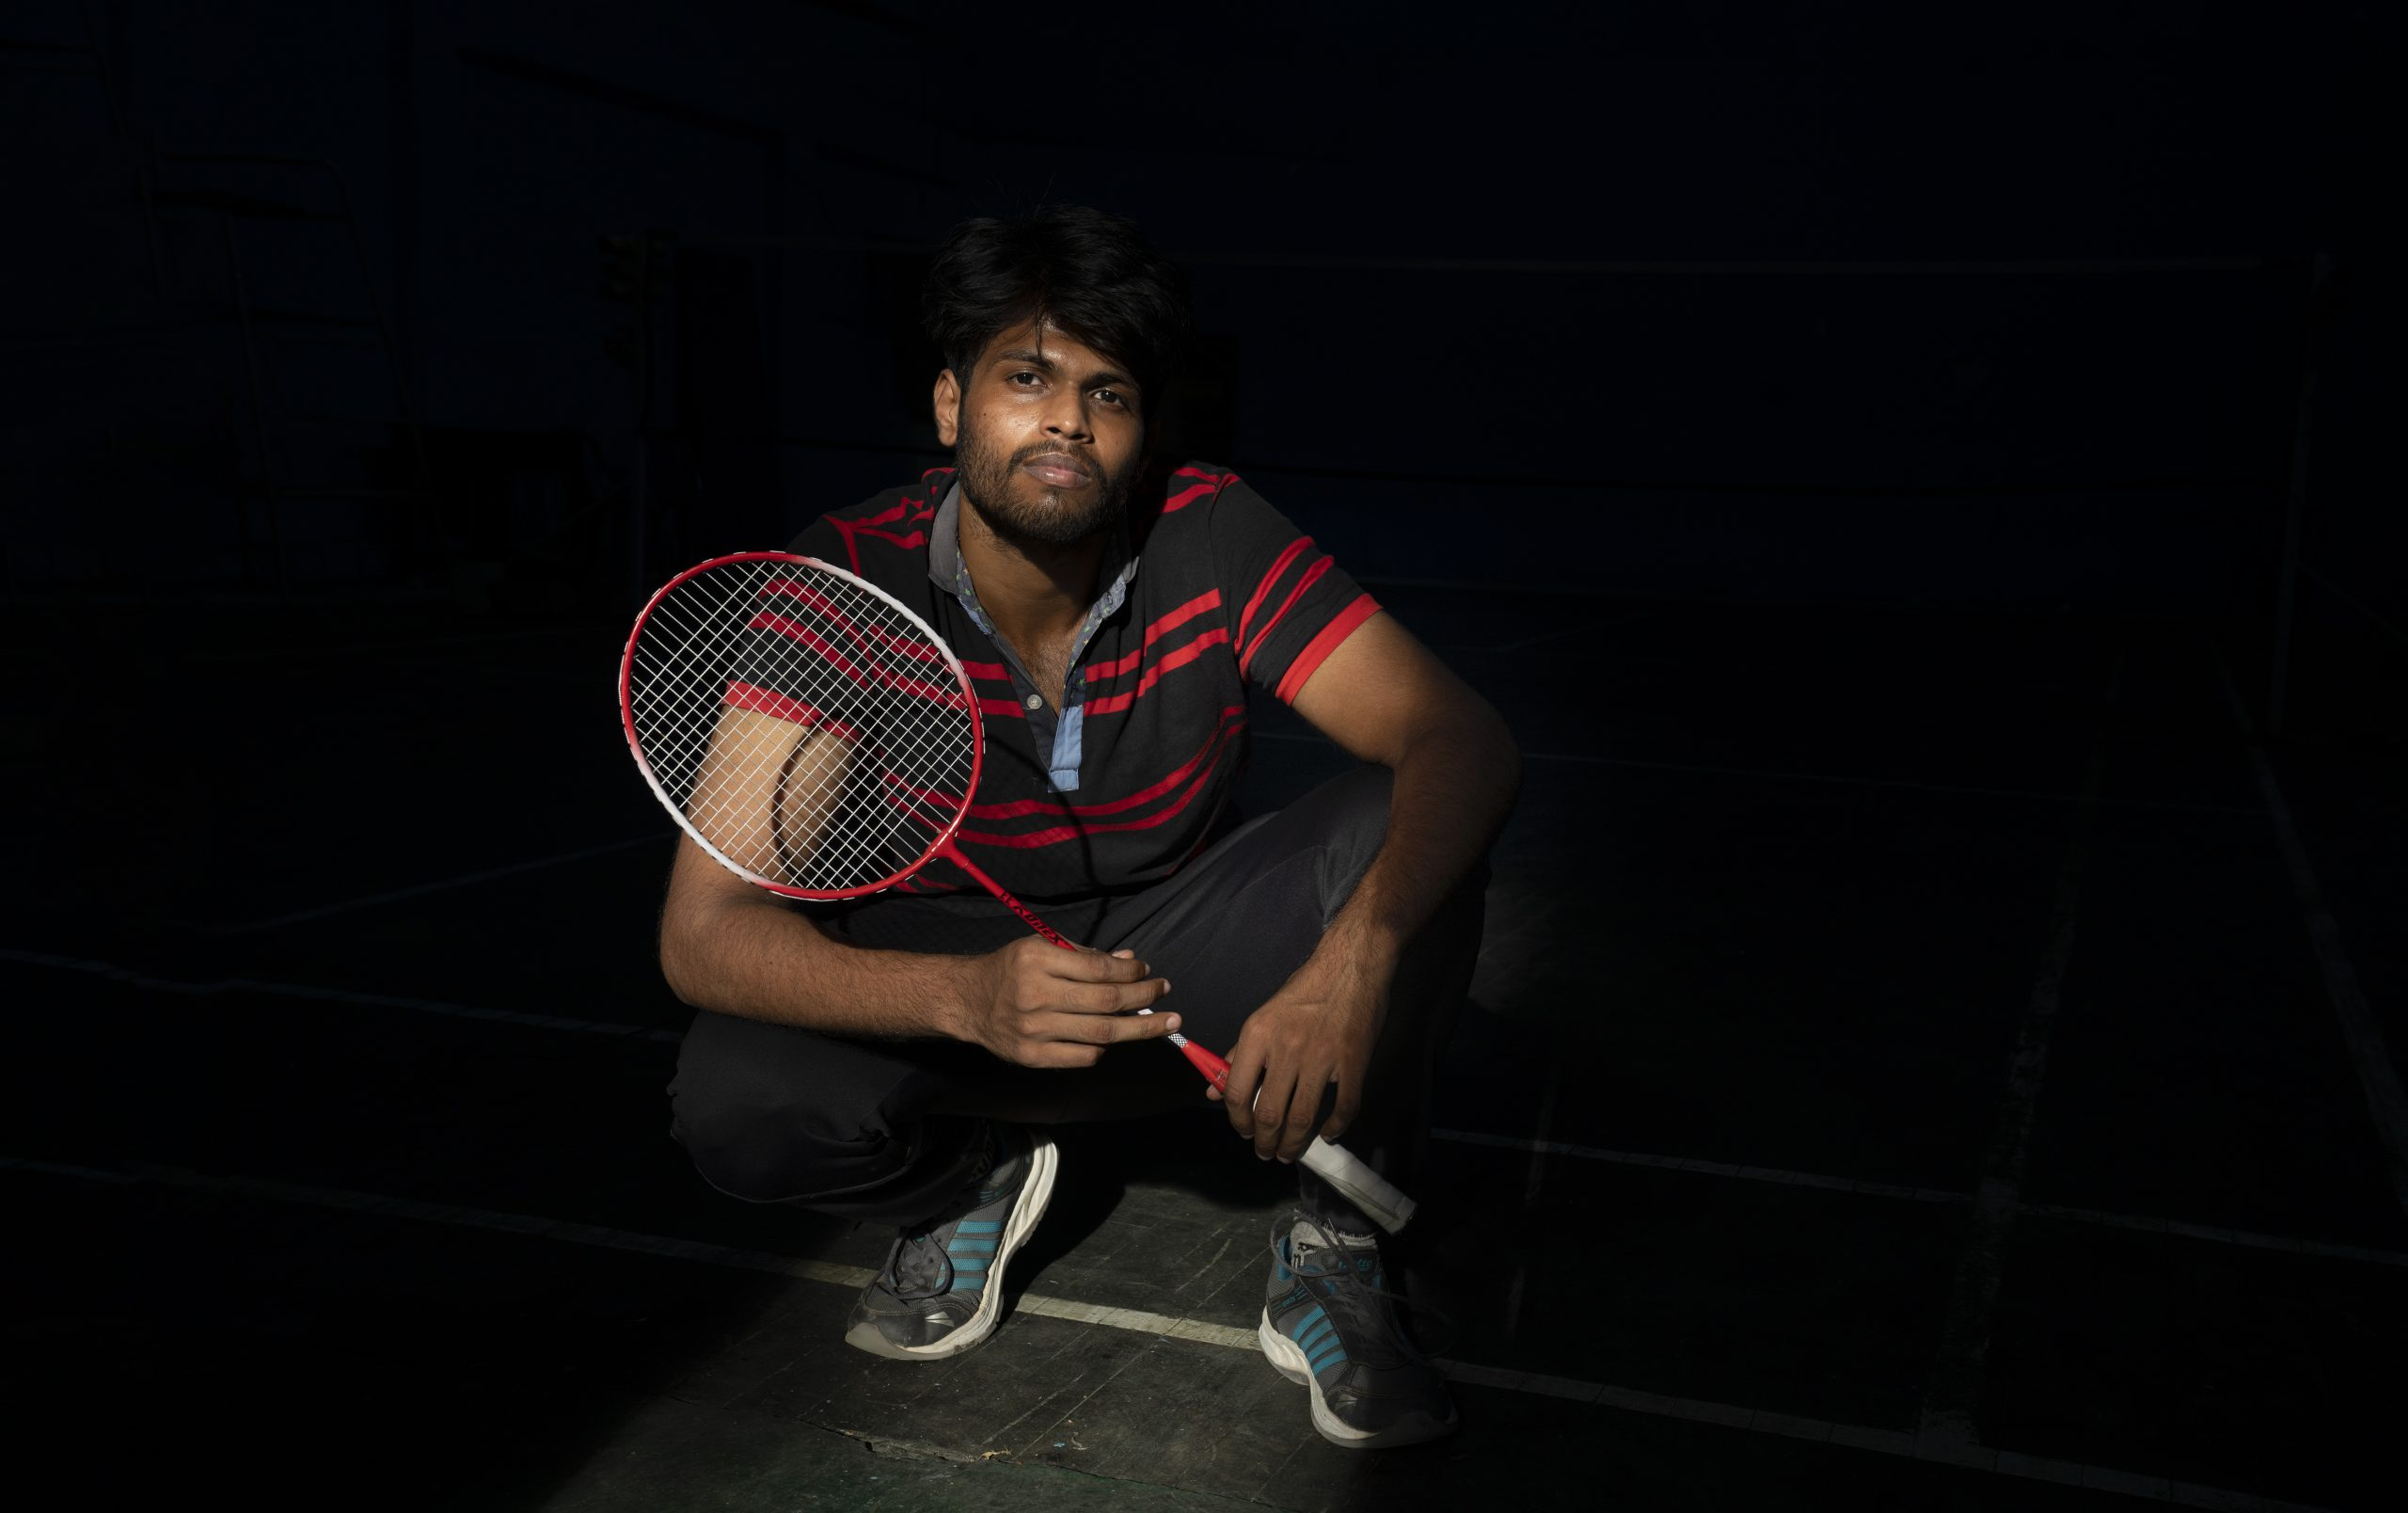 Model shoot for badminton